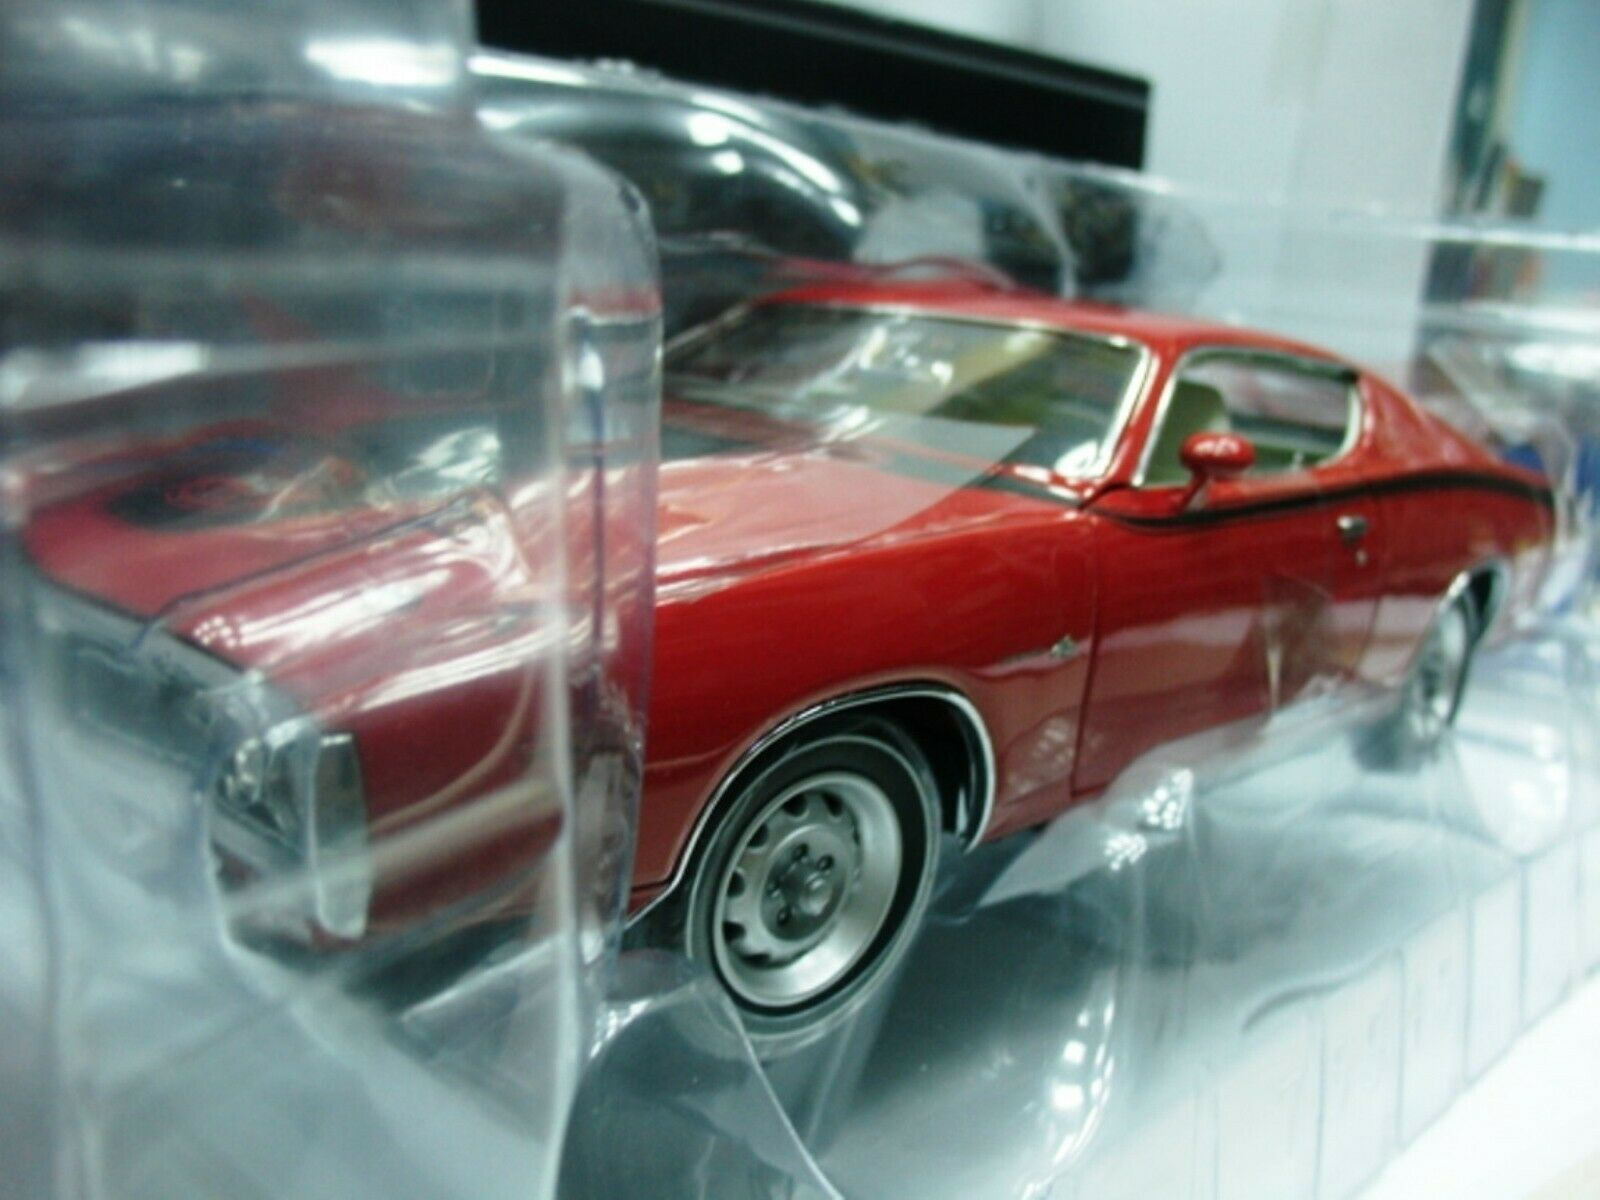 WOW EXTREMELY RARE Dodge Charger Super Bee 426 Hemi 1971 Candy Red 1 18 RC2 ERTL